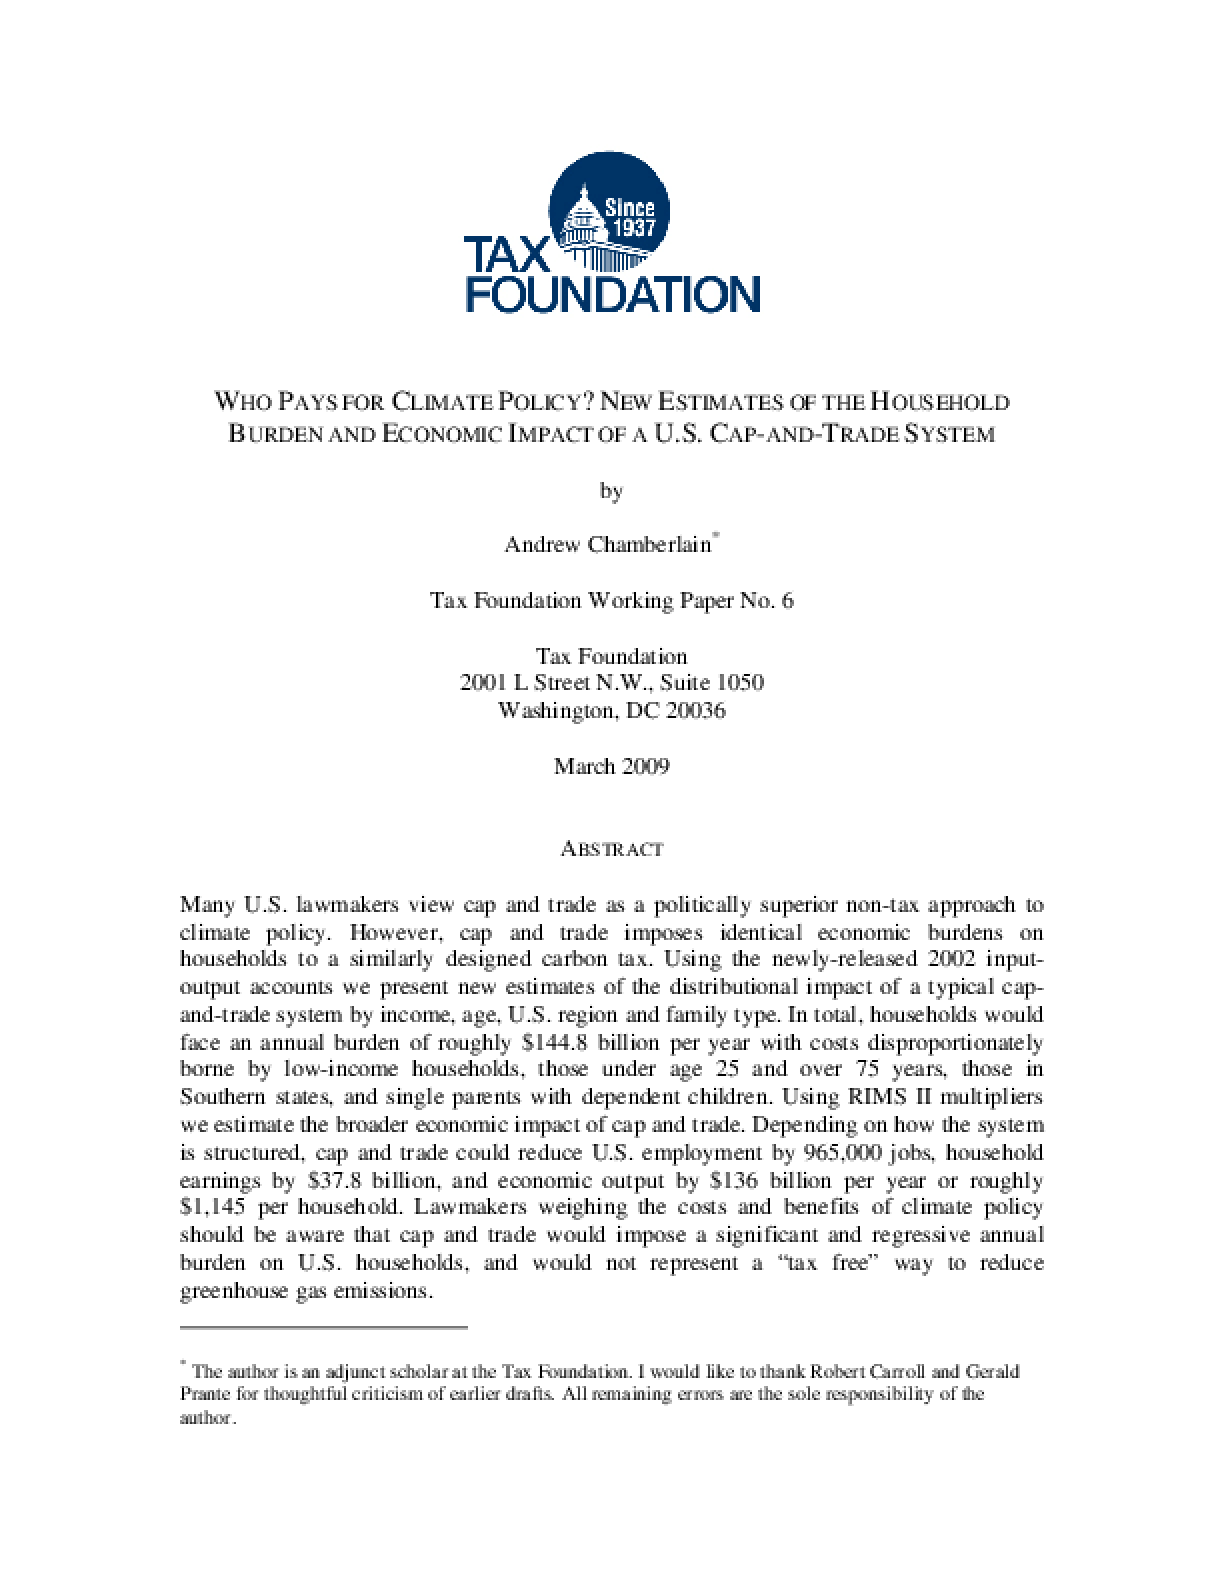 Who Pays for Climate Policy?: New Estimates of the Household Burden and Economic Impact of a U.S. Cap-and-Trade System